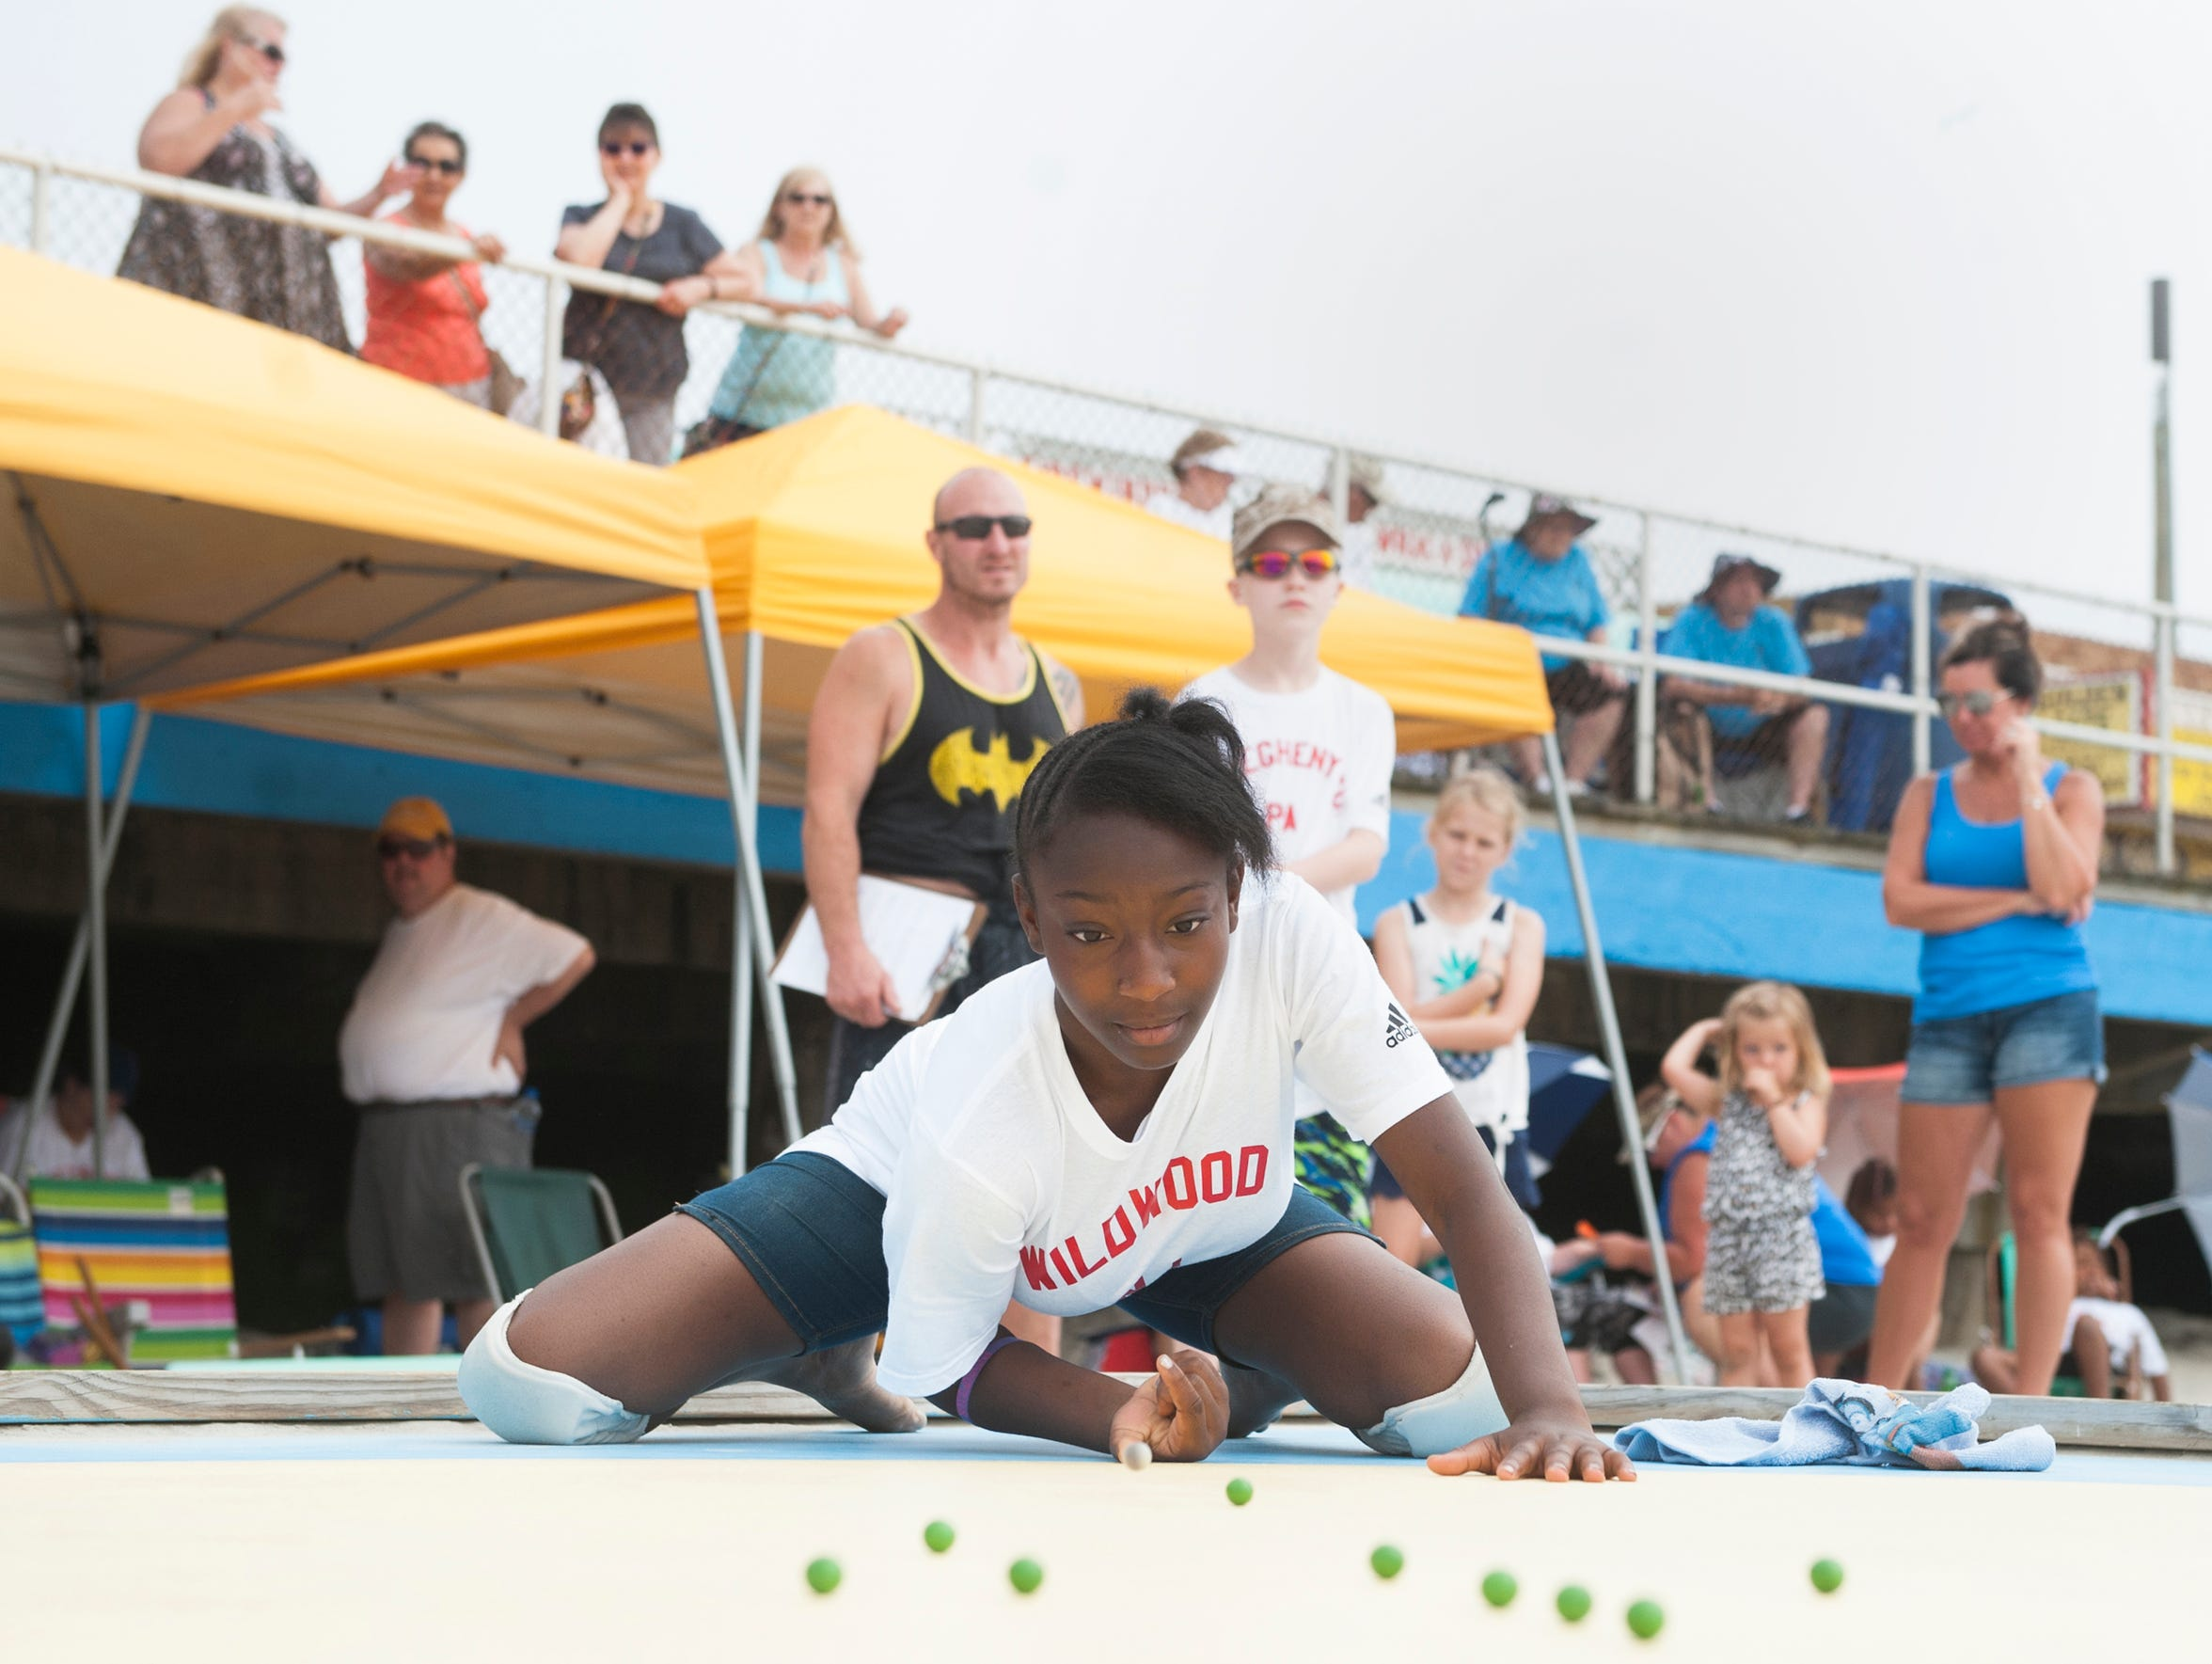 My'air Henry, 14 of Wildwood, competes in the National